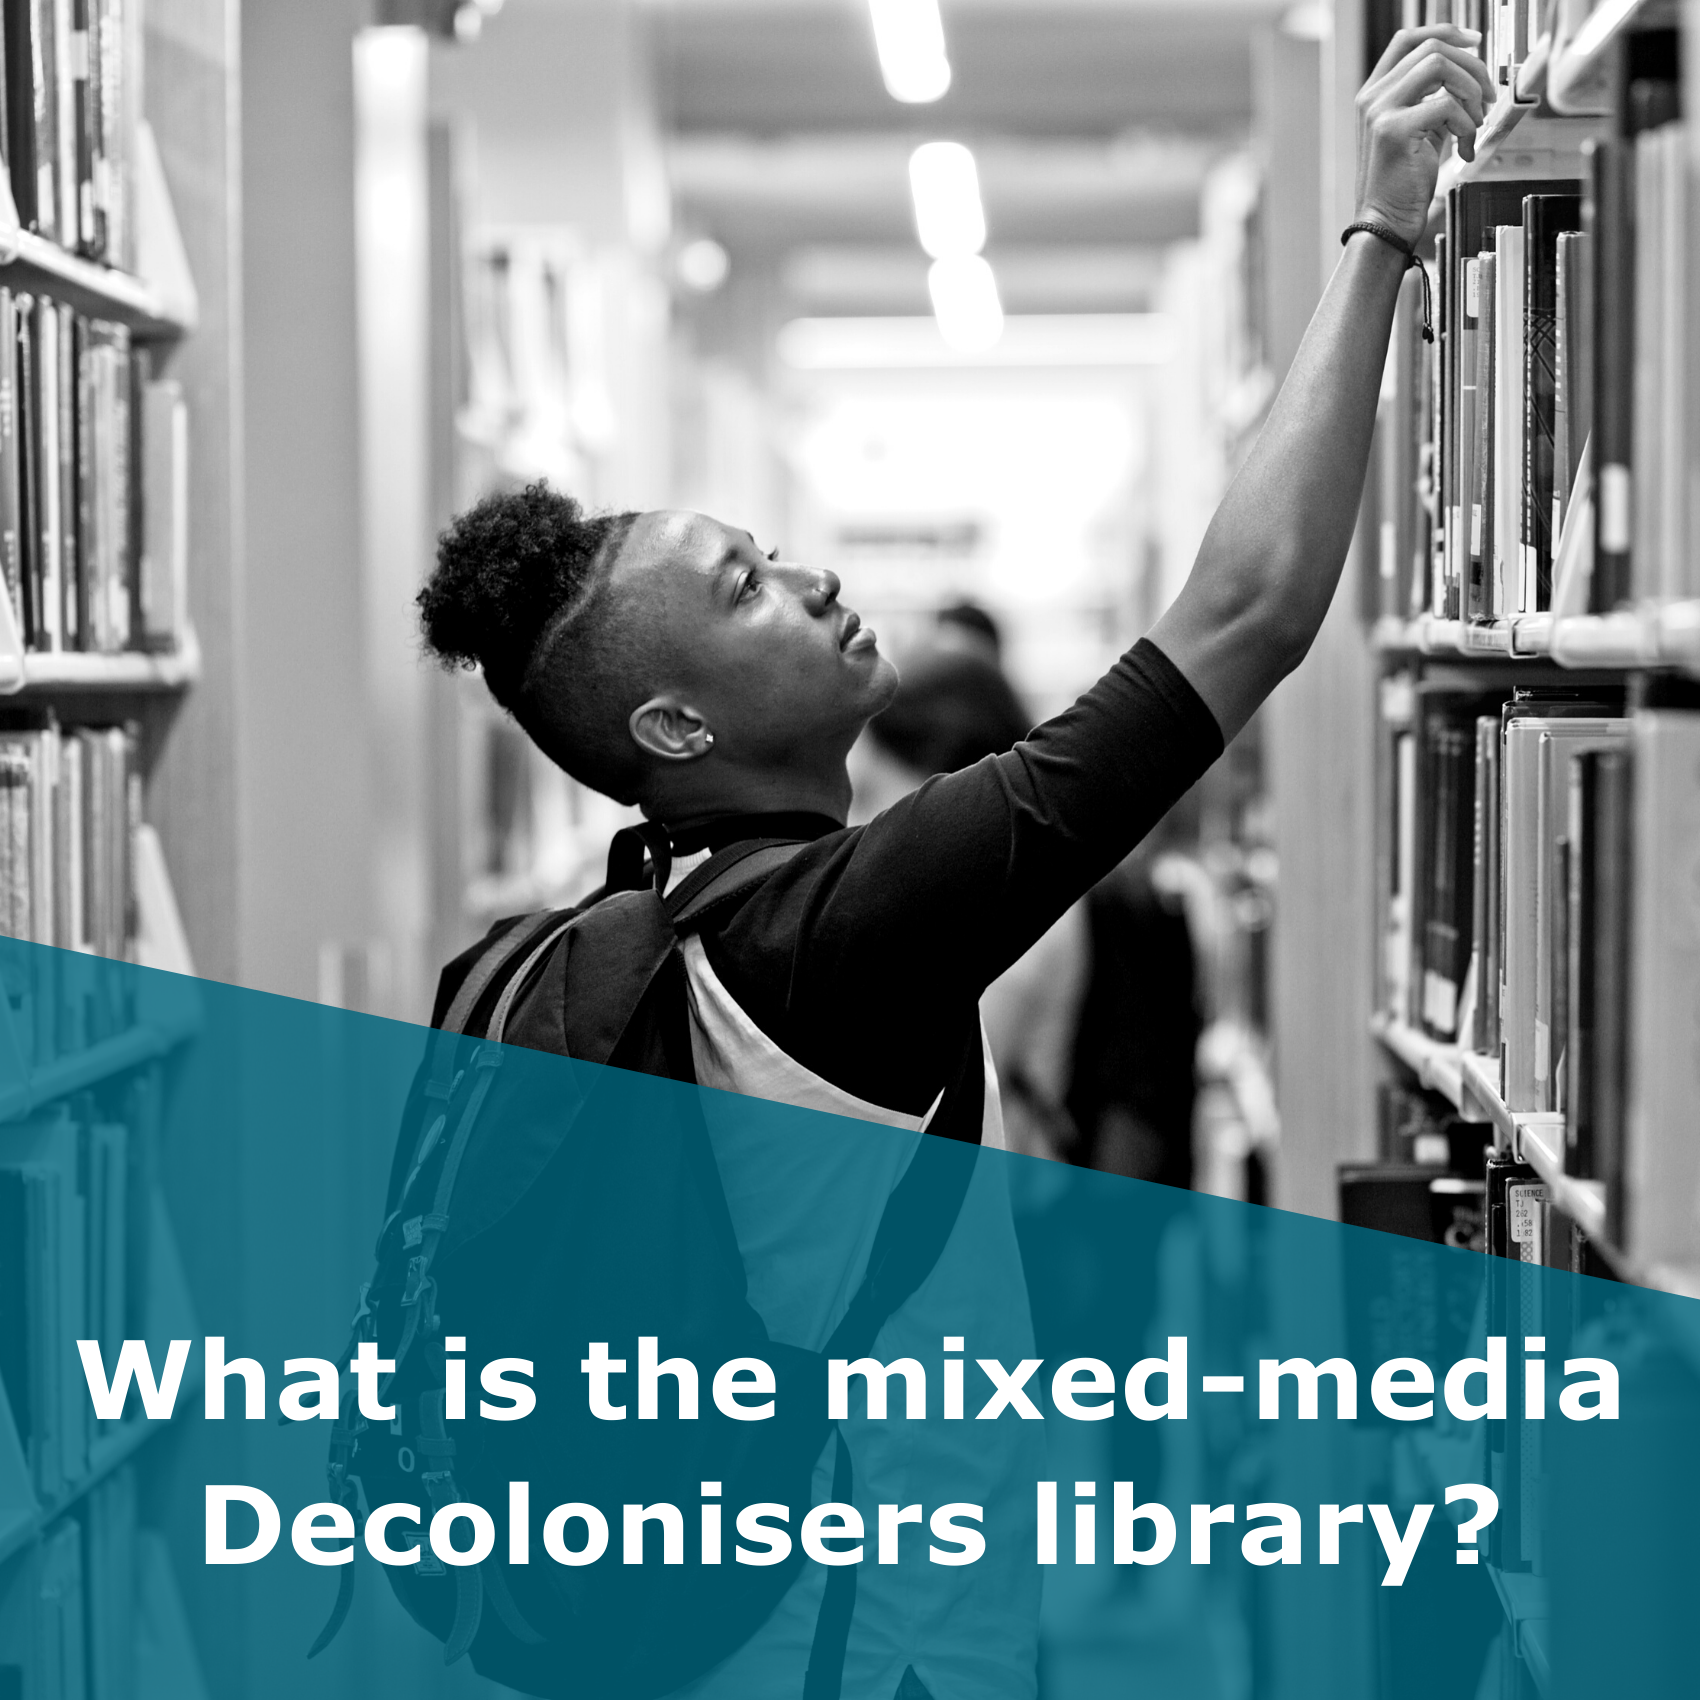 What is the mixed-media Decolonisers' Library?